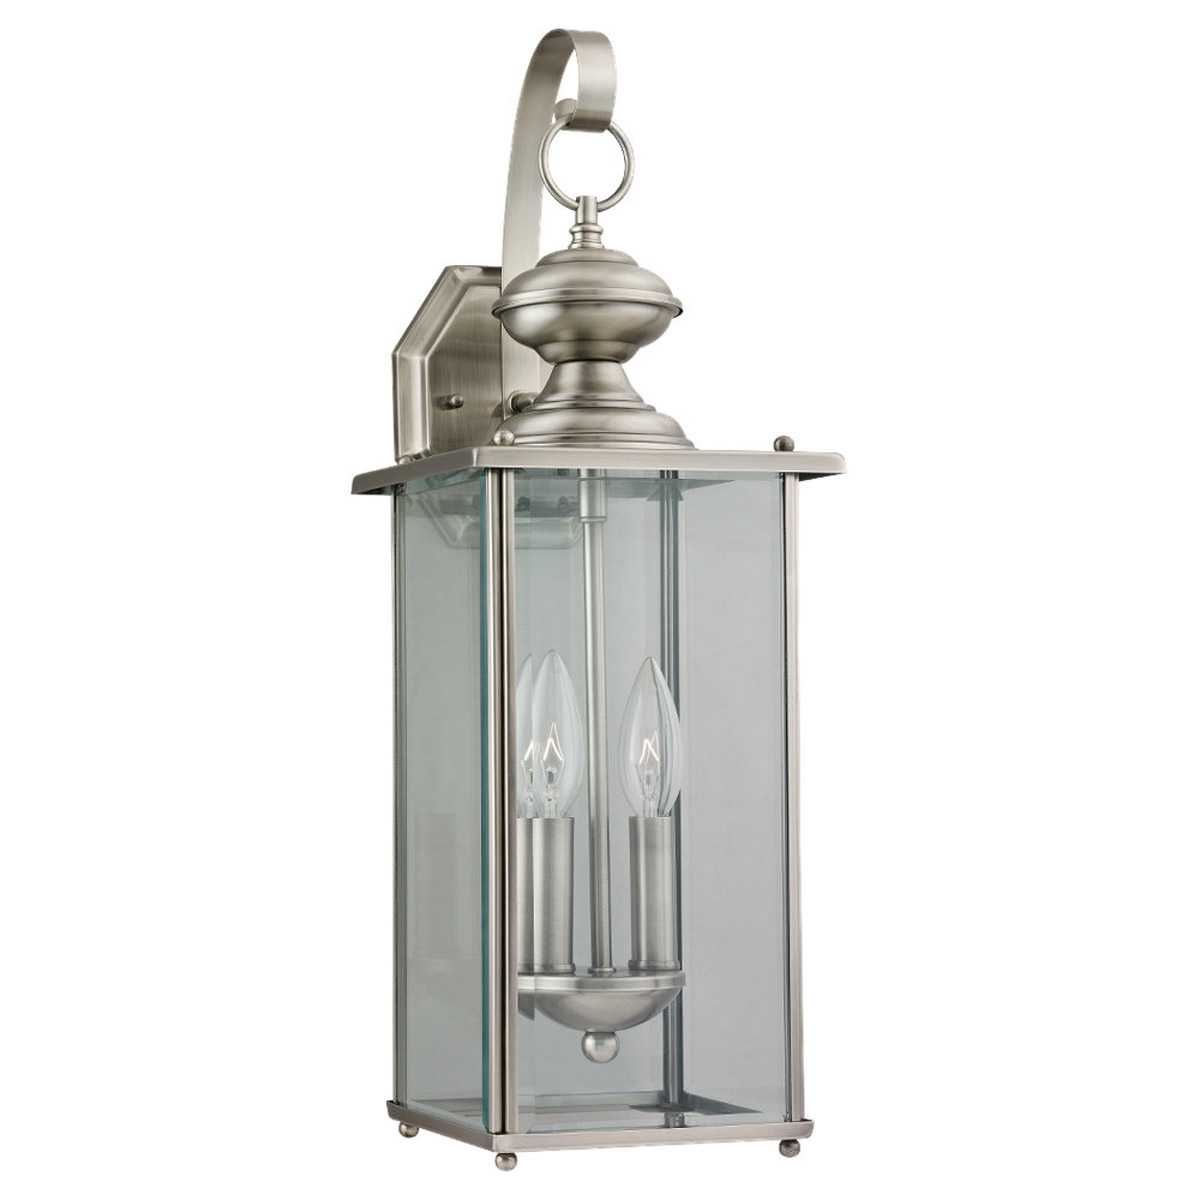 Sea Gull Lighting Jamestowne 2 Light Outdoor Wall Lantern in Antique Brushed Nickel 8468-965